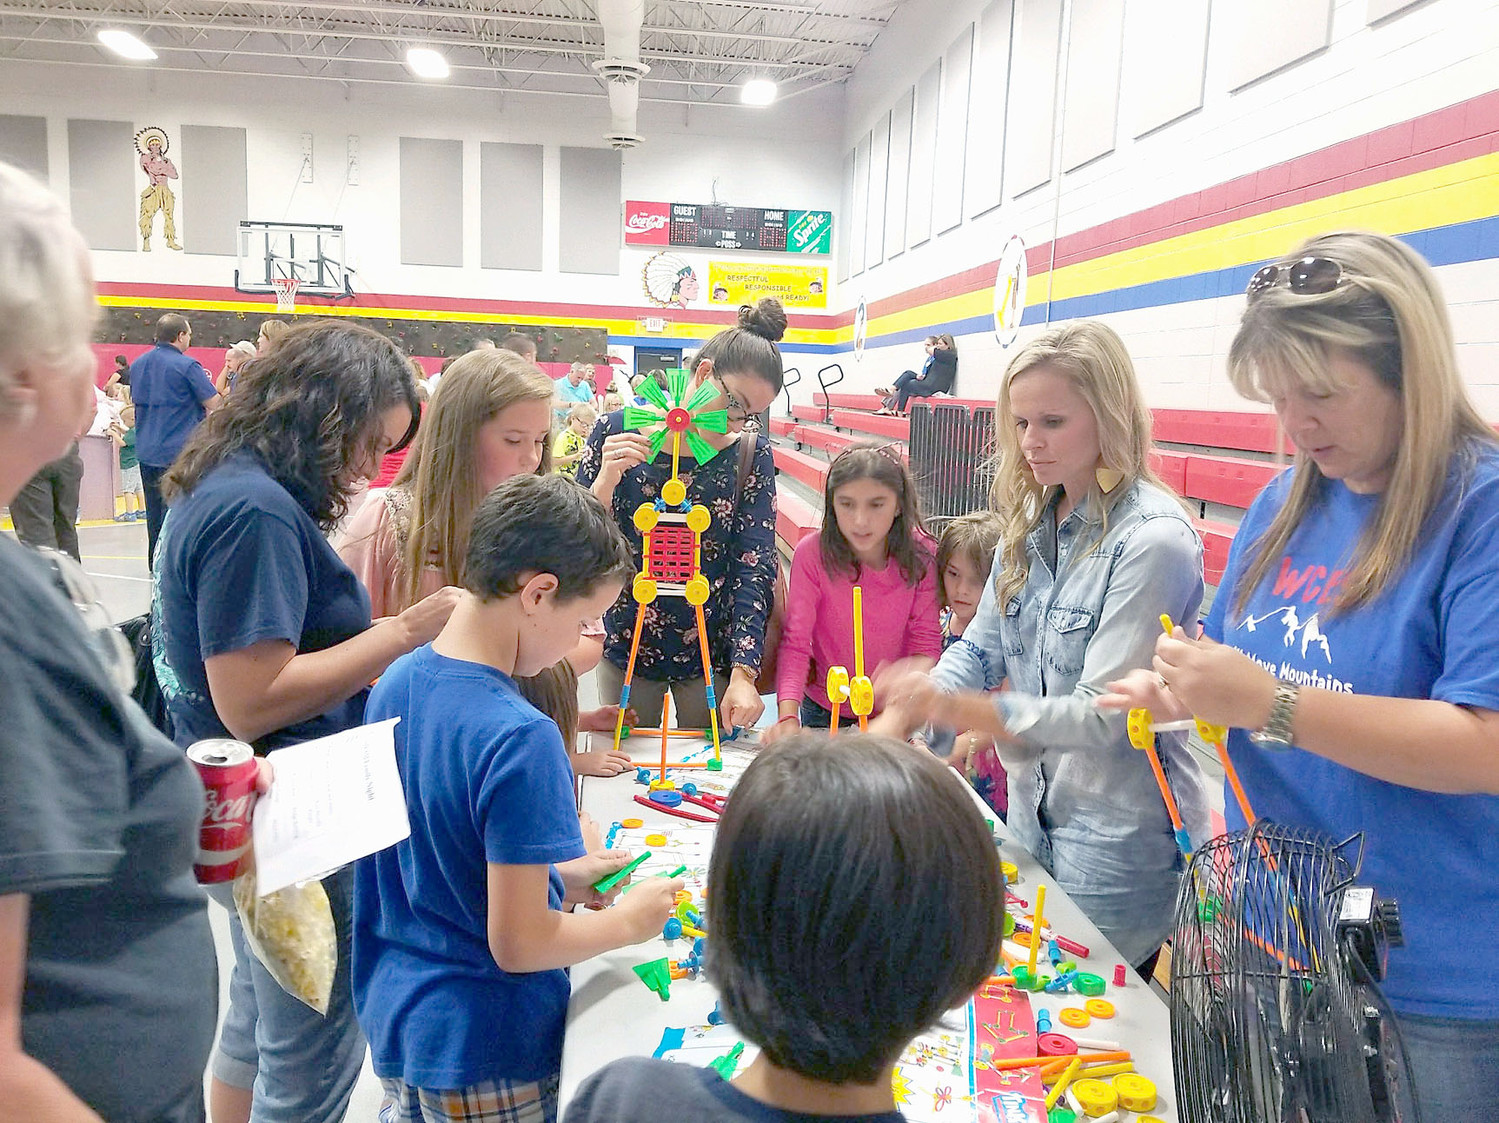 CREATING windmills, students work on a project using K'nex kits, with help from Rebecca Bacon and Kristi Conner. This was one of the nine stations available at STEAM Family Night at Waterville Community Elementary.